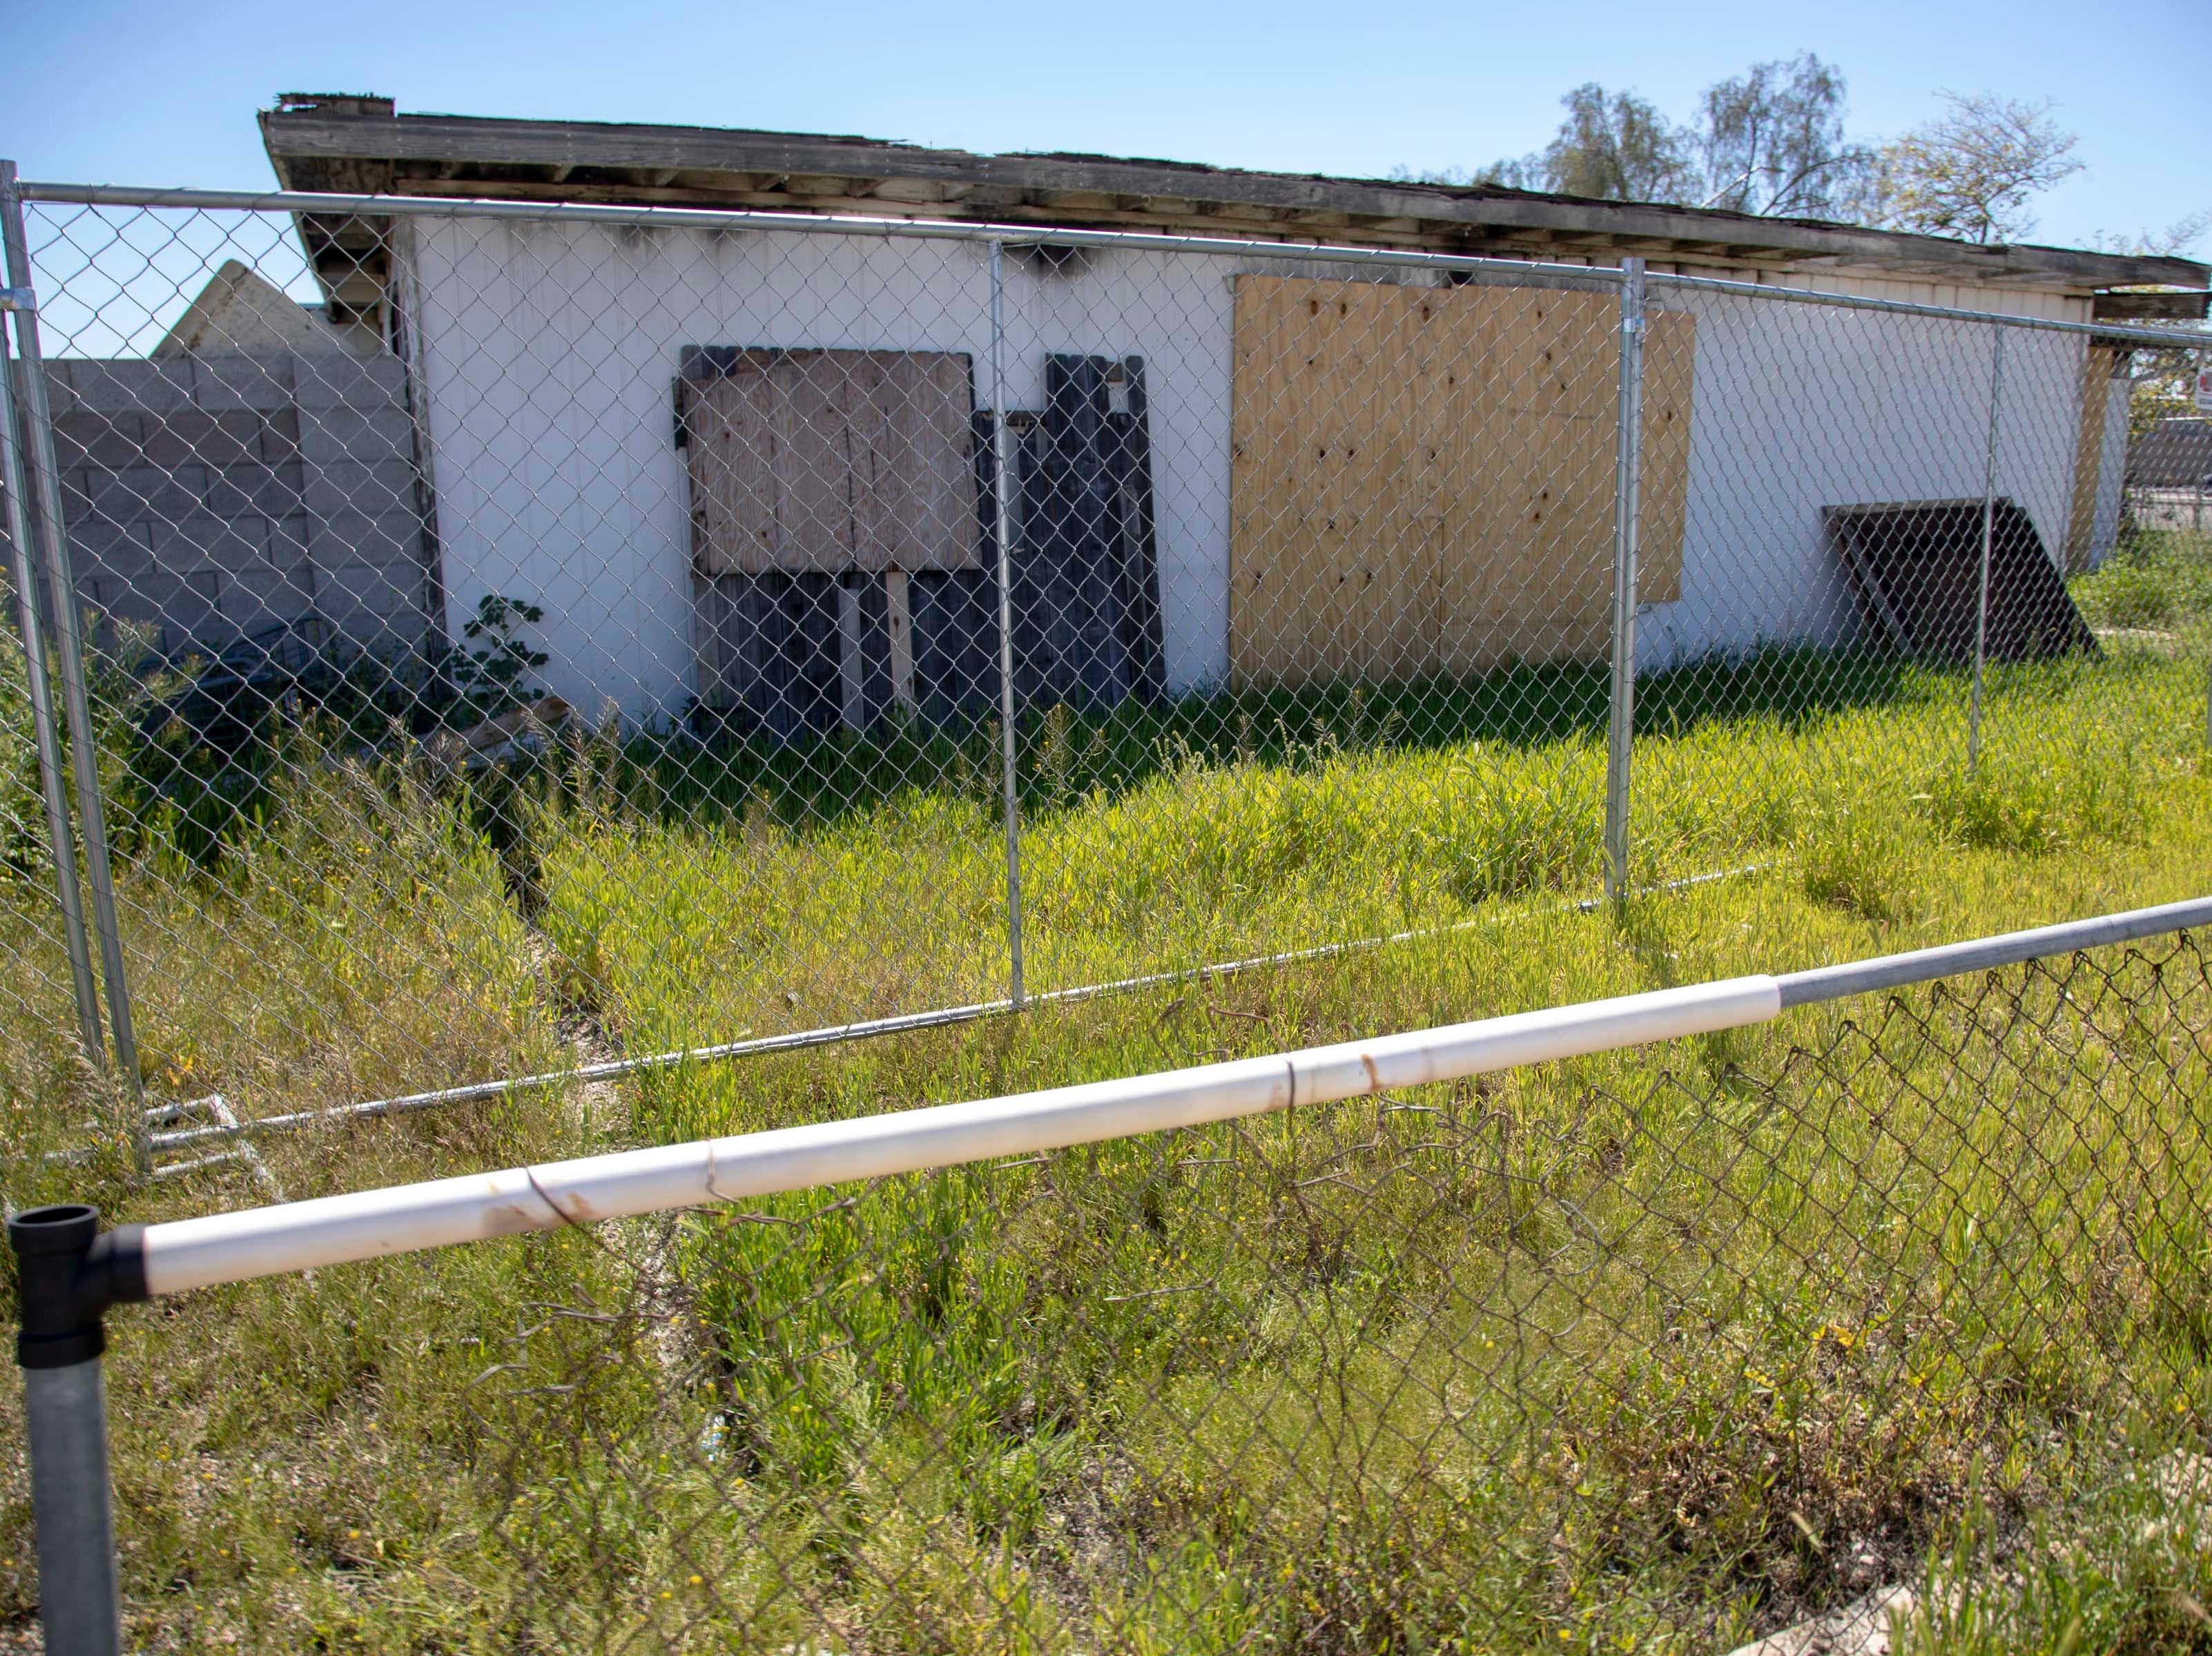 A property owned by Linda and Robert Hiner on Mary Jane Lane in Glendale will soon be demolished.